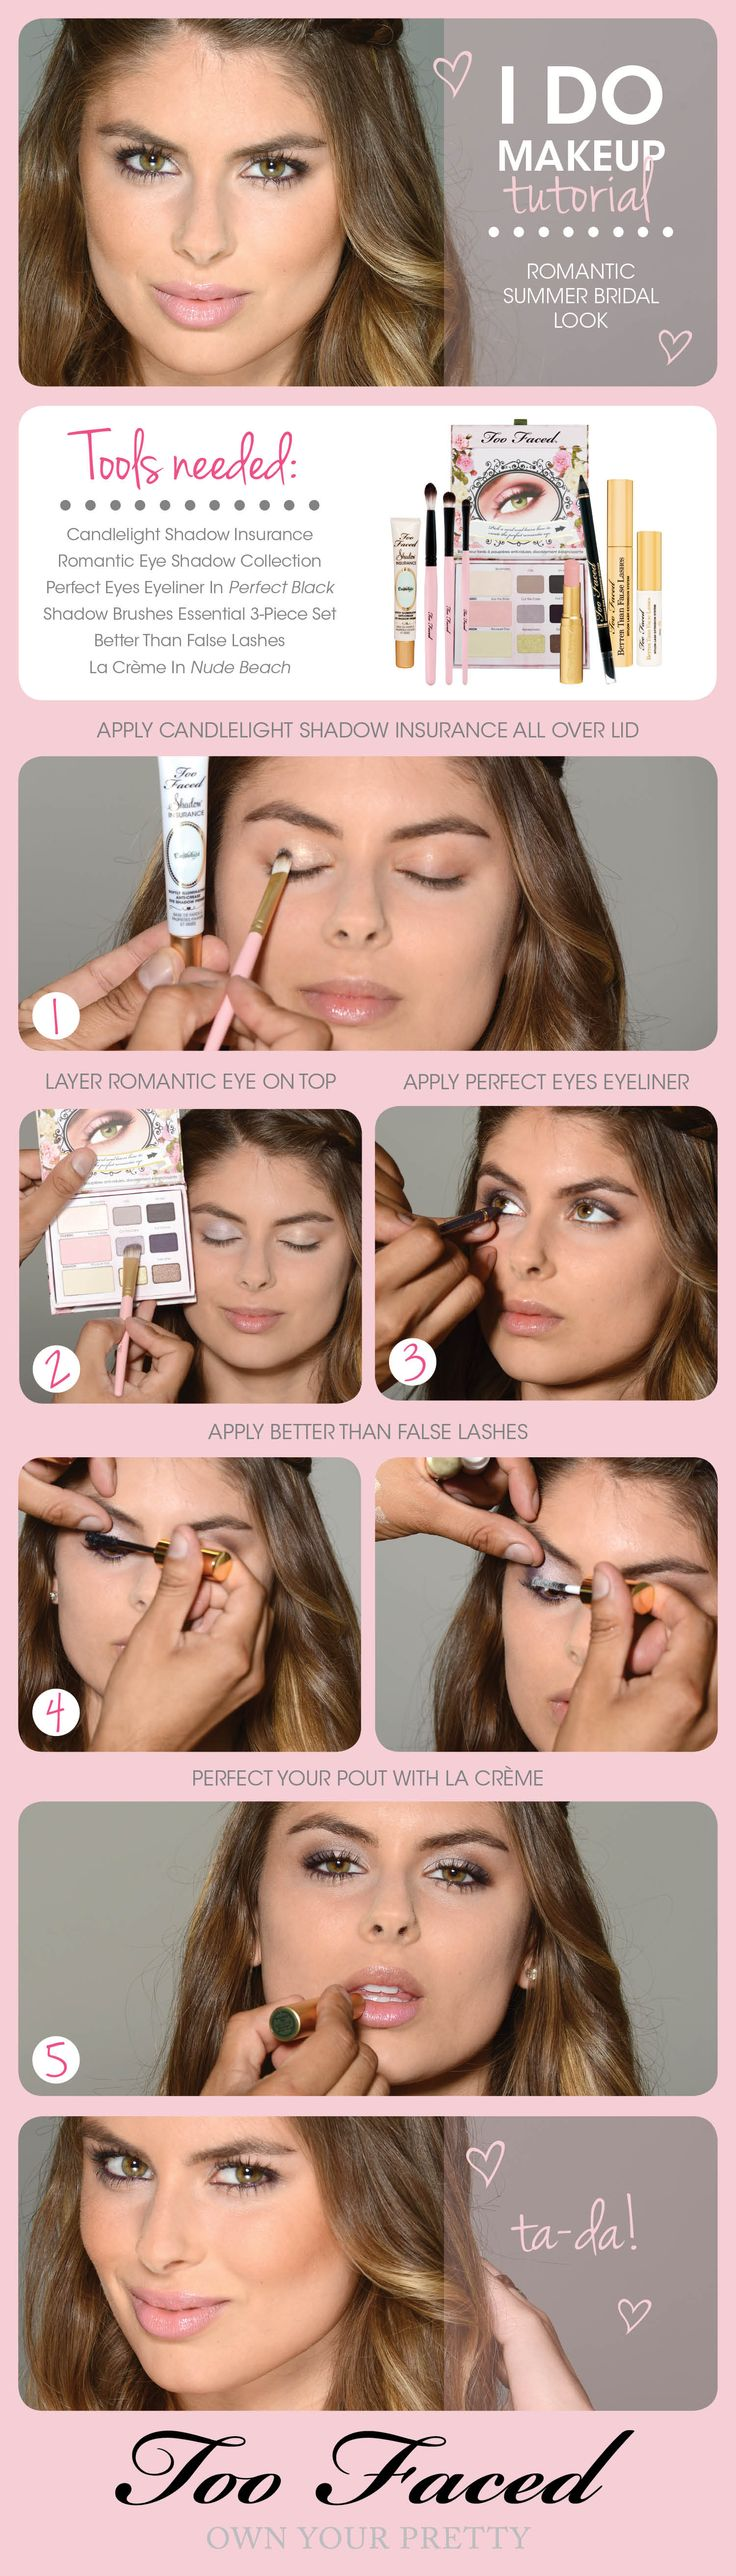 Wedding season is still in full swing and whether you plan to put a ring on it or just join the happy couple in celebration, you'll want a fab look. Try this easy step-by-step tutorial by the talented Daniel Chinchilla-Beauty Expert! #Toofaced